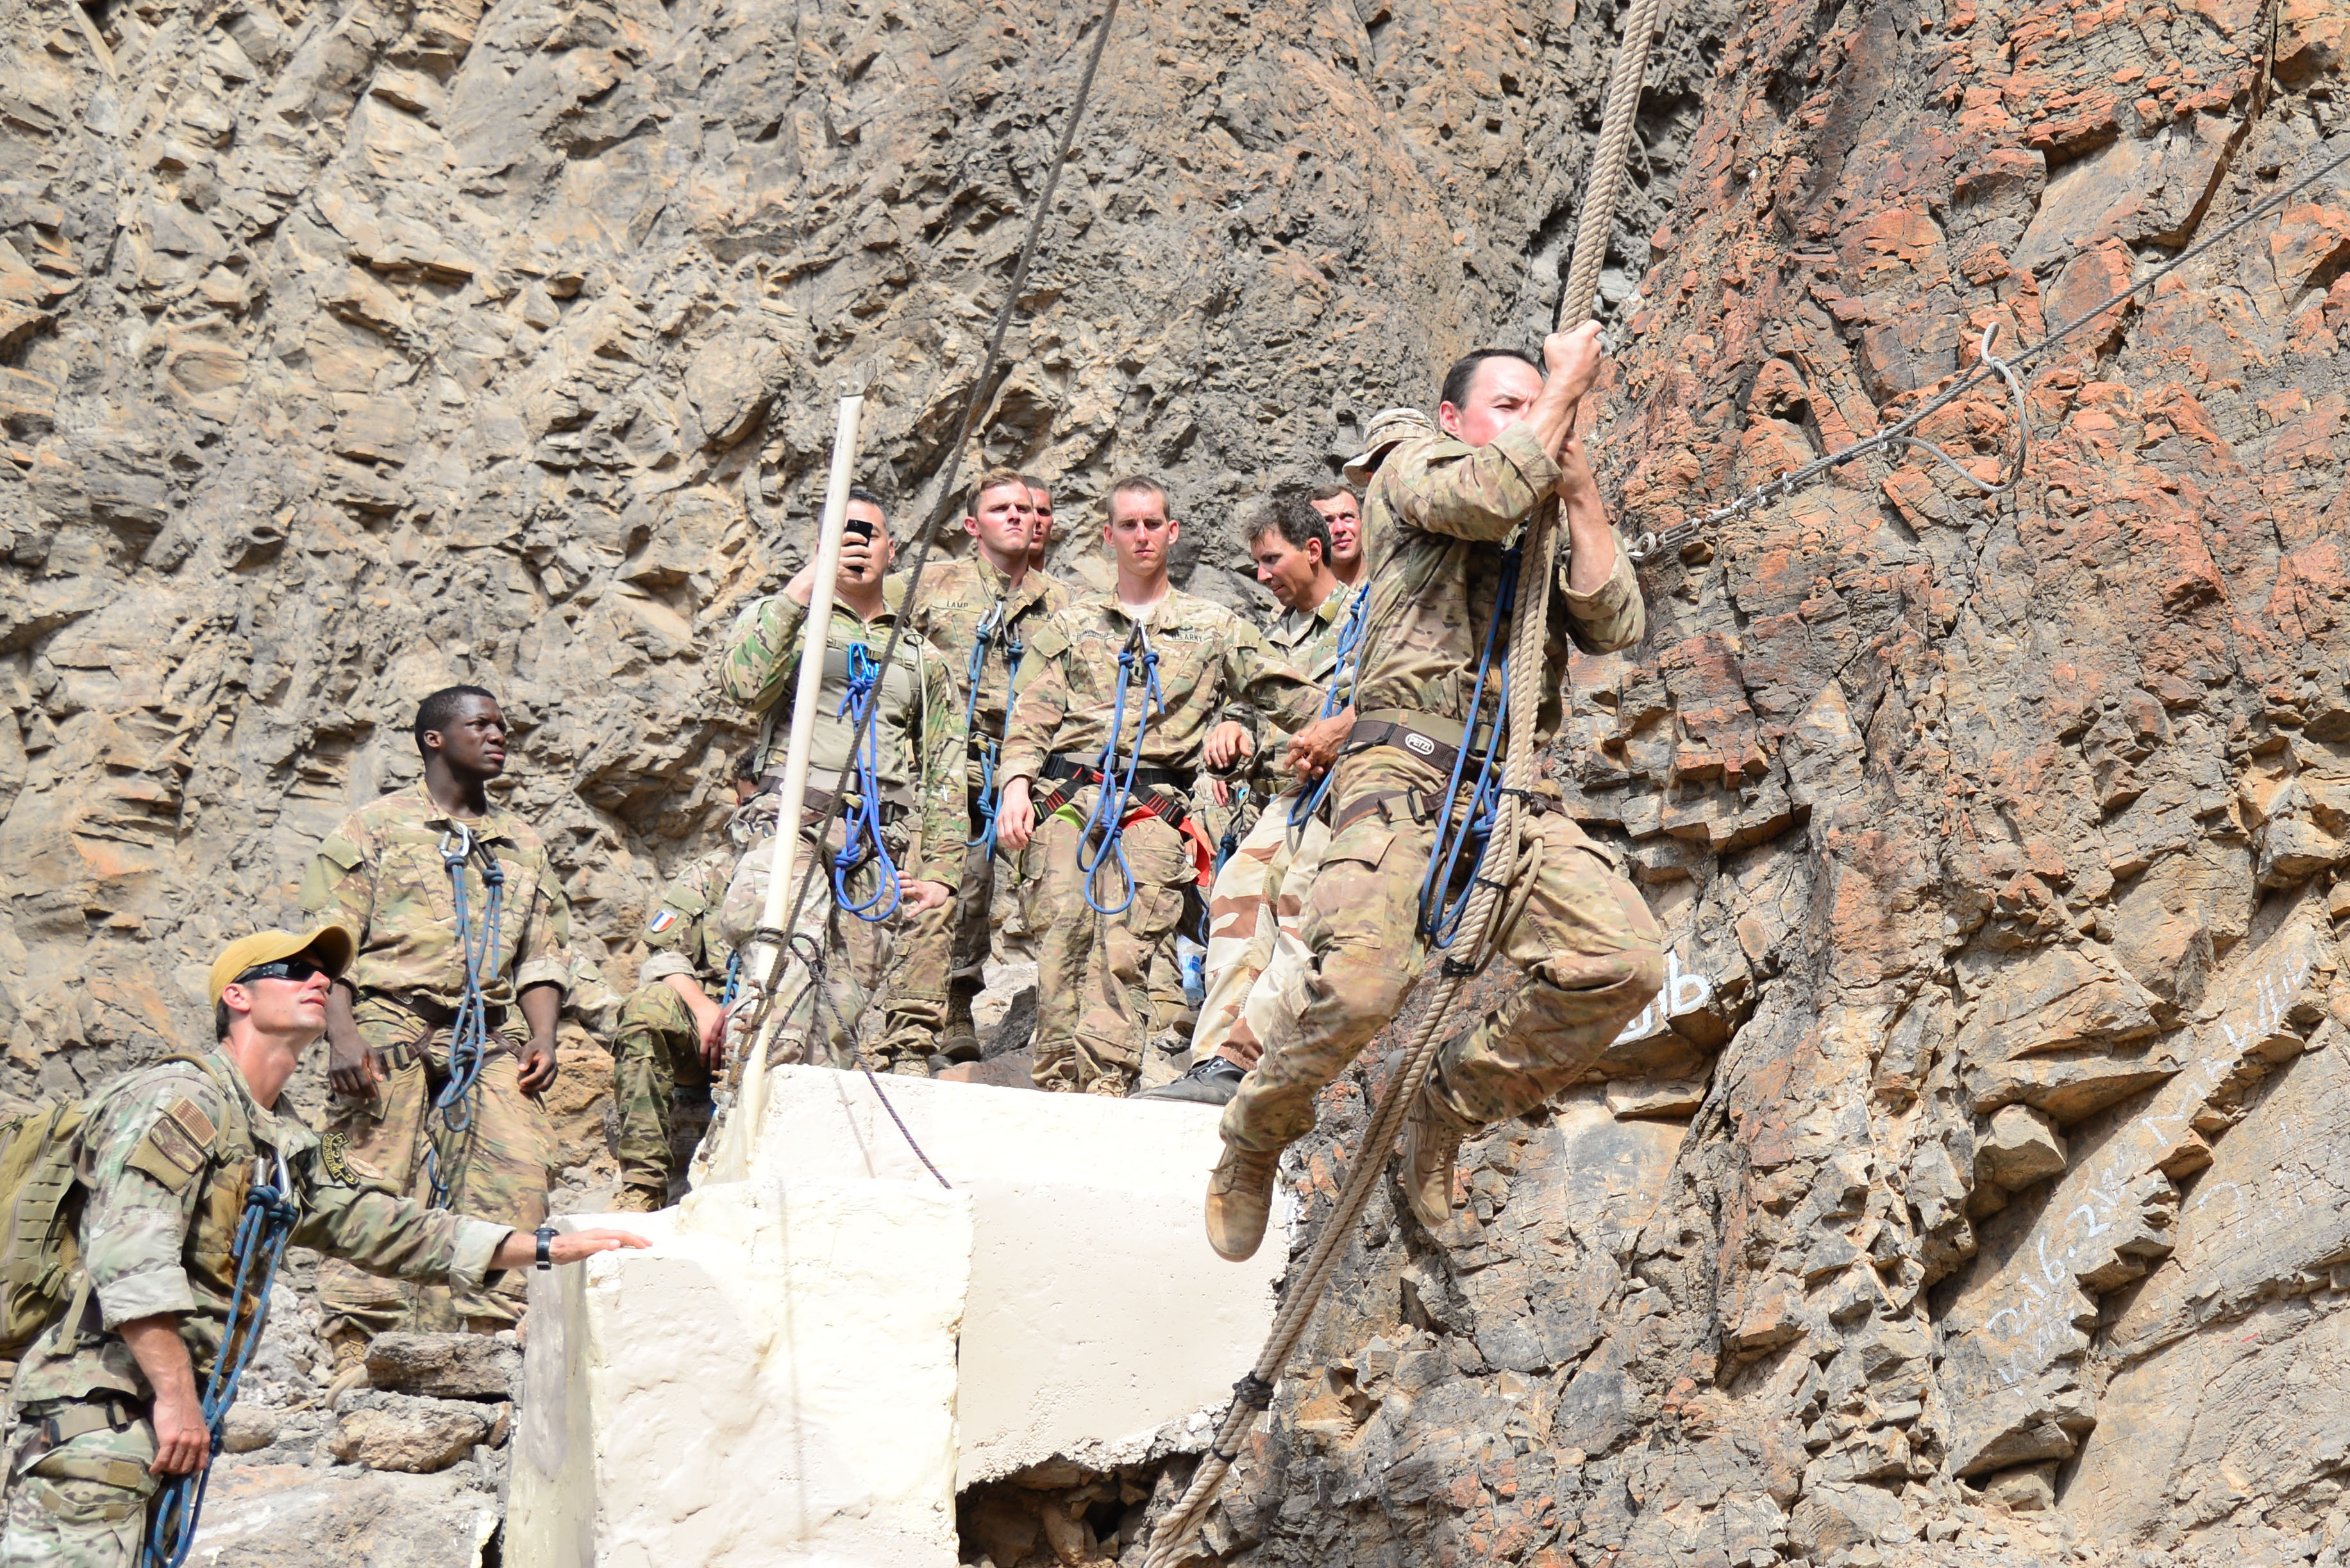 A U.S. Army soldier swings from a ledge to a rope ladder during the French Desert Survival Course, May 6, 2015, at Arta Plage, Djibouti. The mountain obstacle course is the final test, requiring nearly every skill set learned in training, and must be completed in a strict 25-minute time limit to graduate the course. (U.S. Air Force photo by Senior Airman Benjamin Raughton/Released)